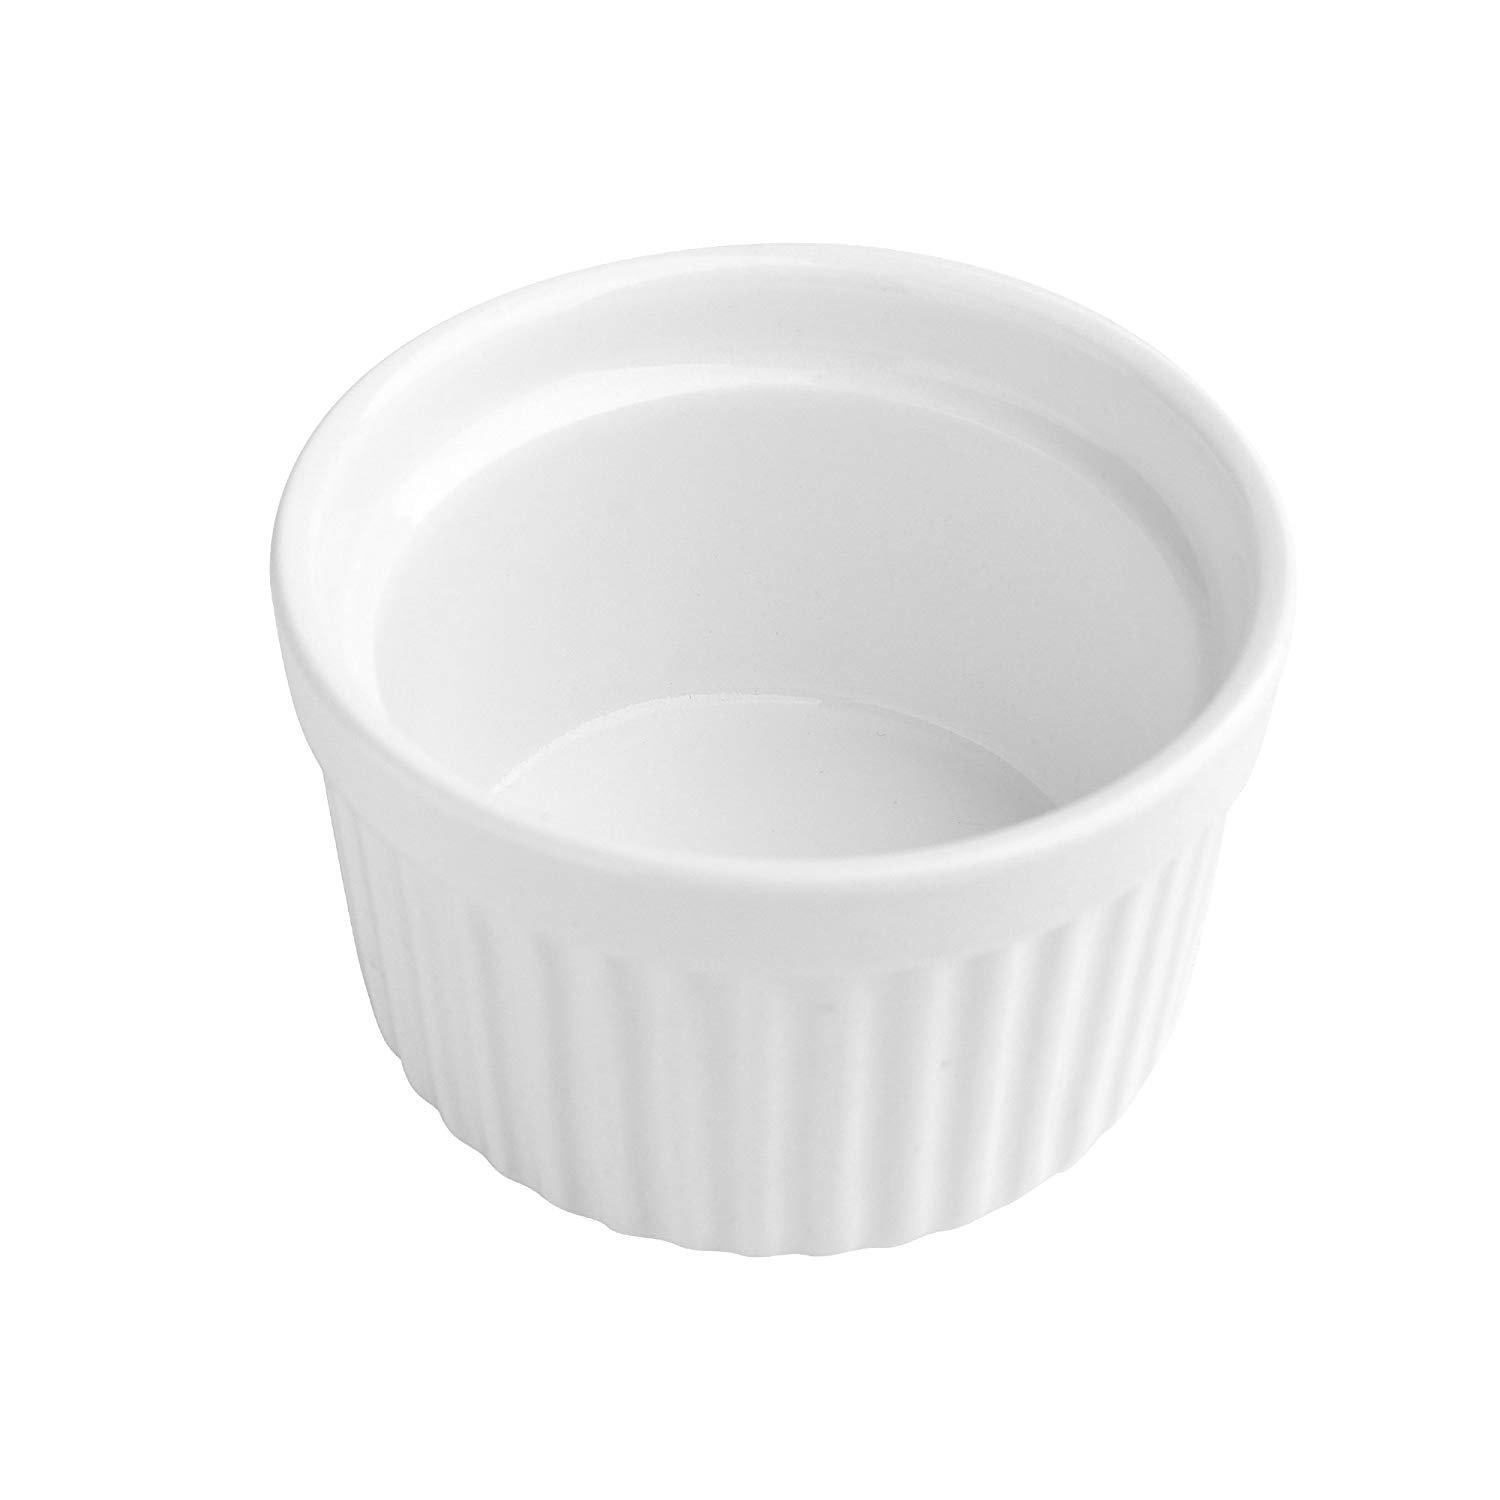 4 oz. Porcelain Ramekins, Porcelain Souffle Dishes, Ramekins for Souffle, Creme Brulee and Dipping Sauces - Set of 8, White by MAMA-AI (Image #5)